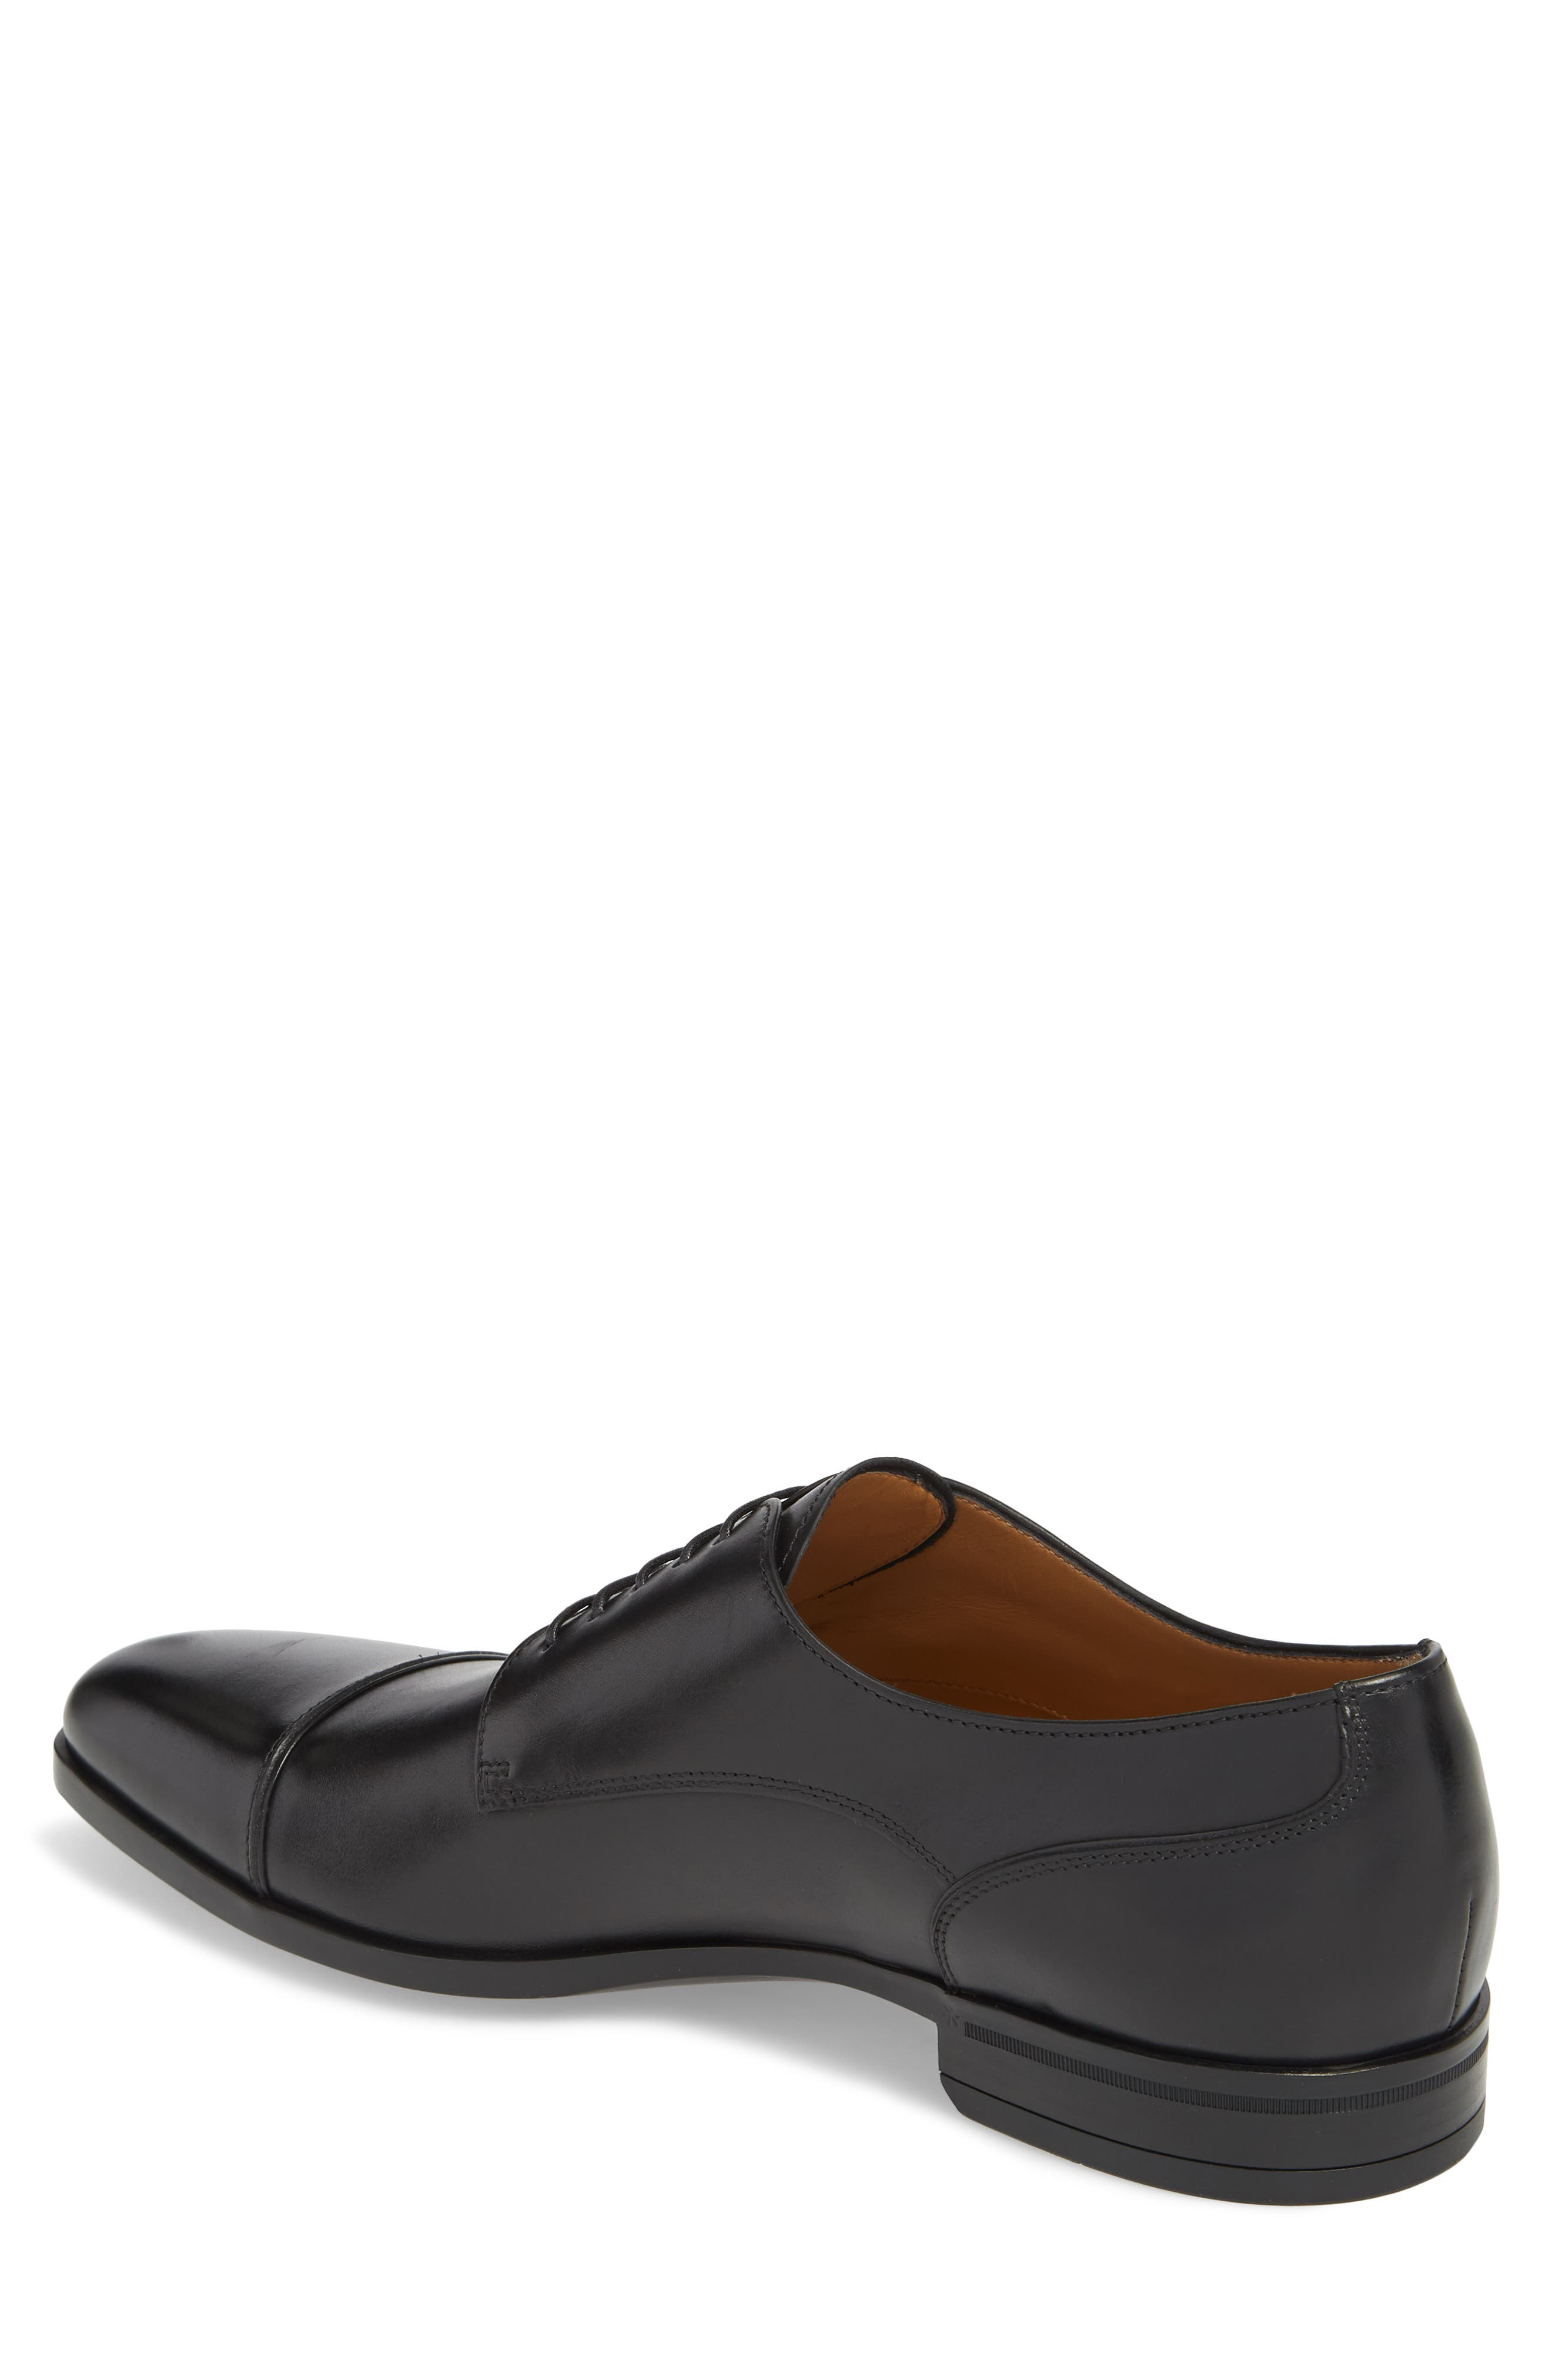 Hugo Boss Portland Cap Toe Derby,                             Alternate thumbnail 2, color,                             001